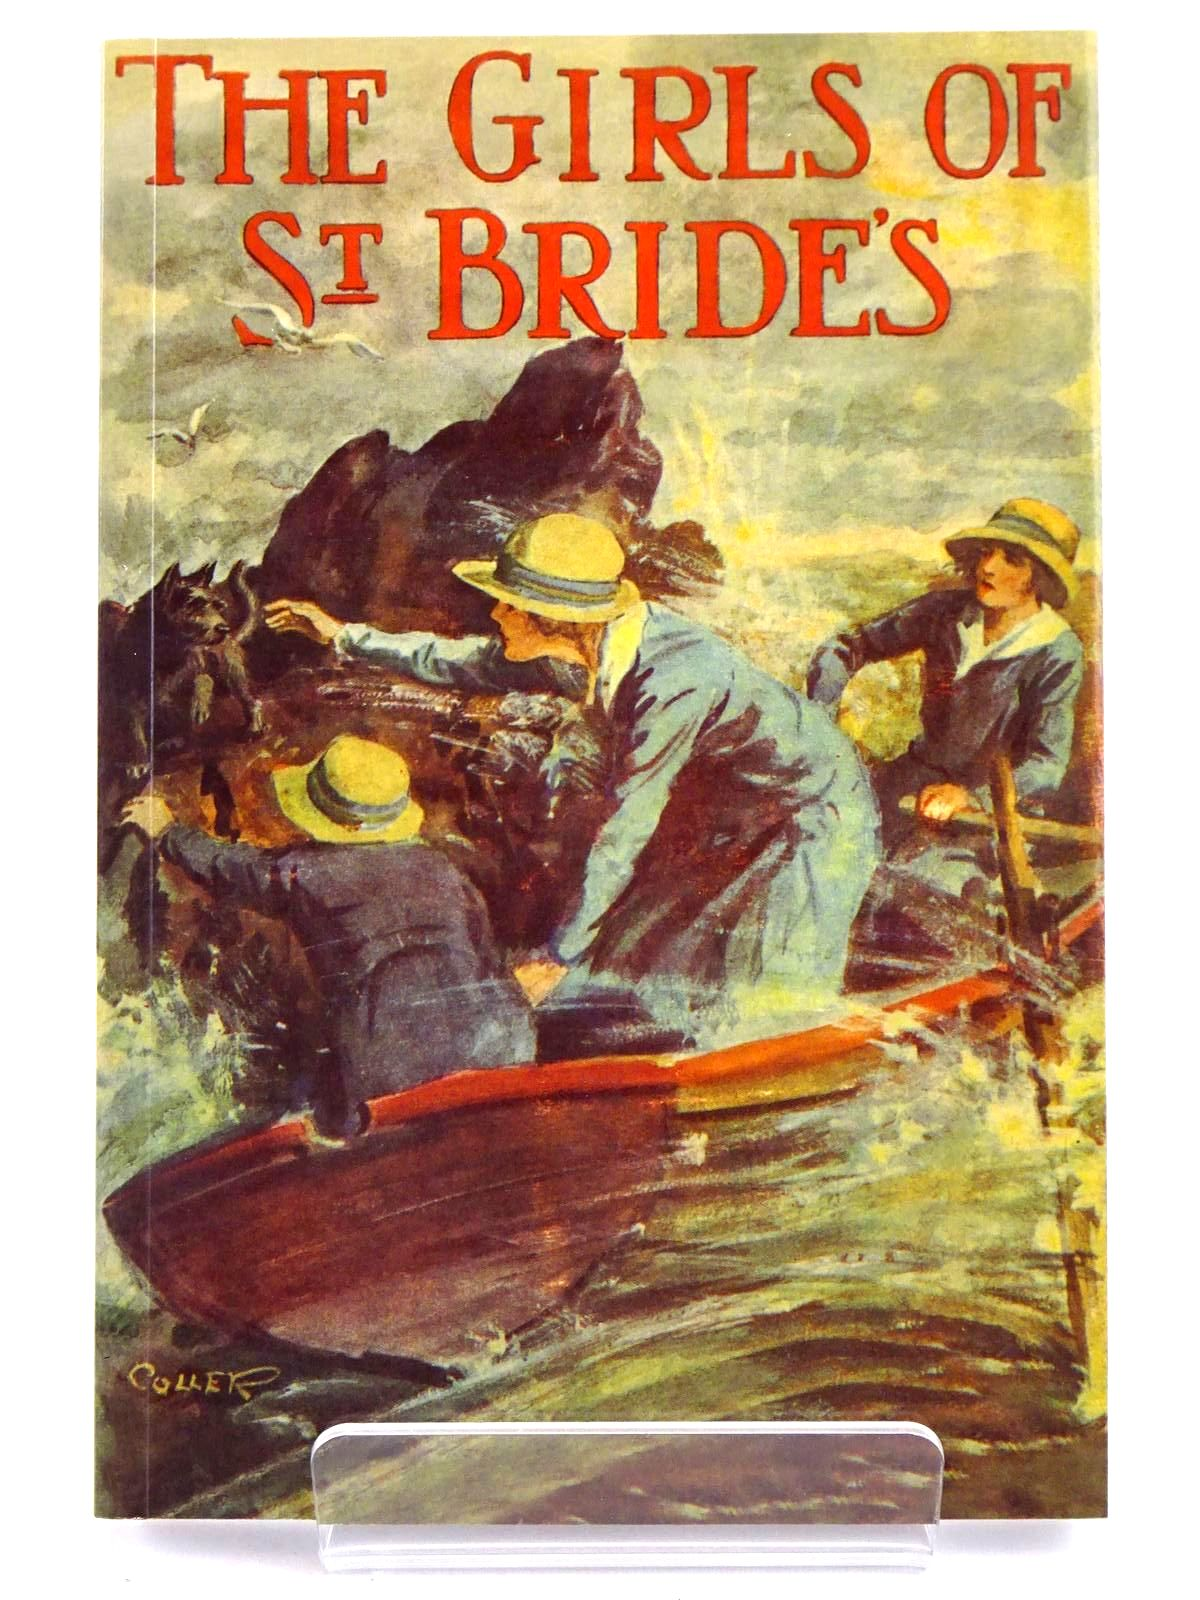 Photo of THE GIRLS OF ST. BRIDE'S written by Bruce, Dorita Fairlie illustrated by Coller, Henry published by Girls Gone By (STOCK CODE: 1318346)  for sale by Stella & Rose's Books